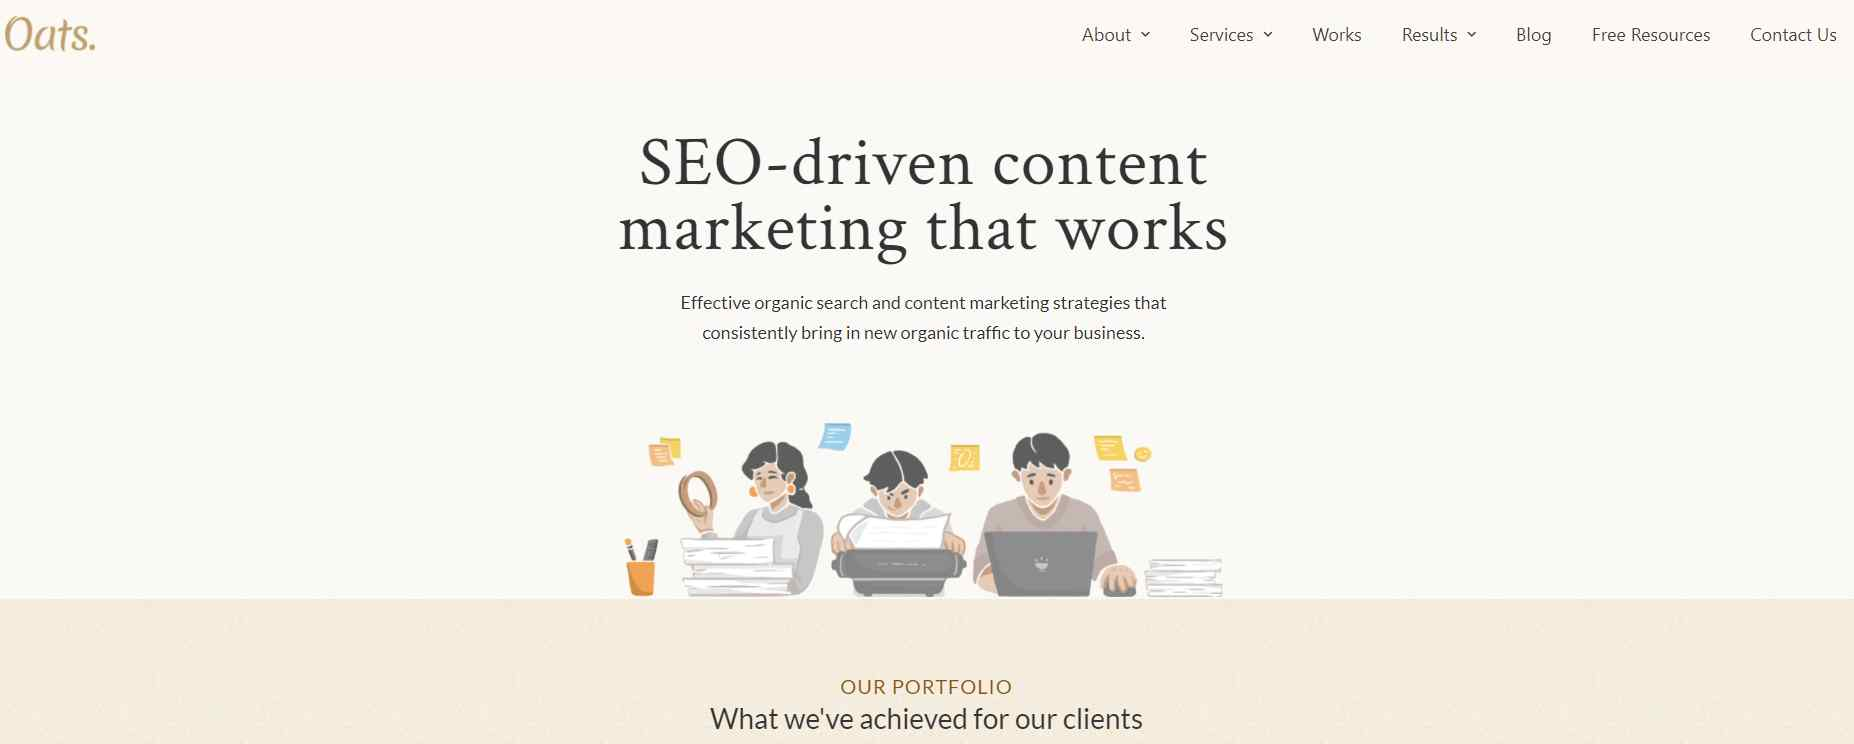 oats Website Copywriting The Complete Guide